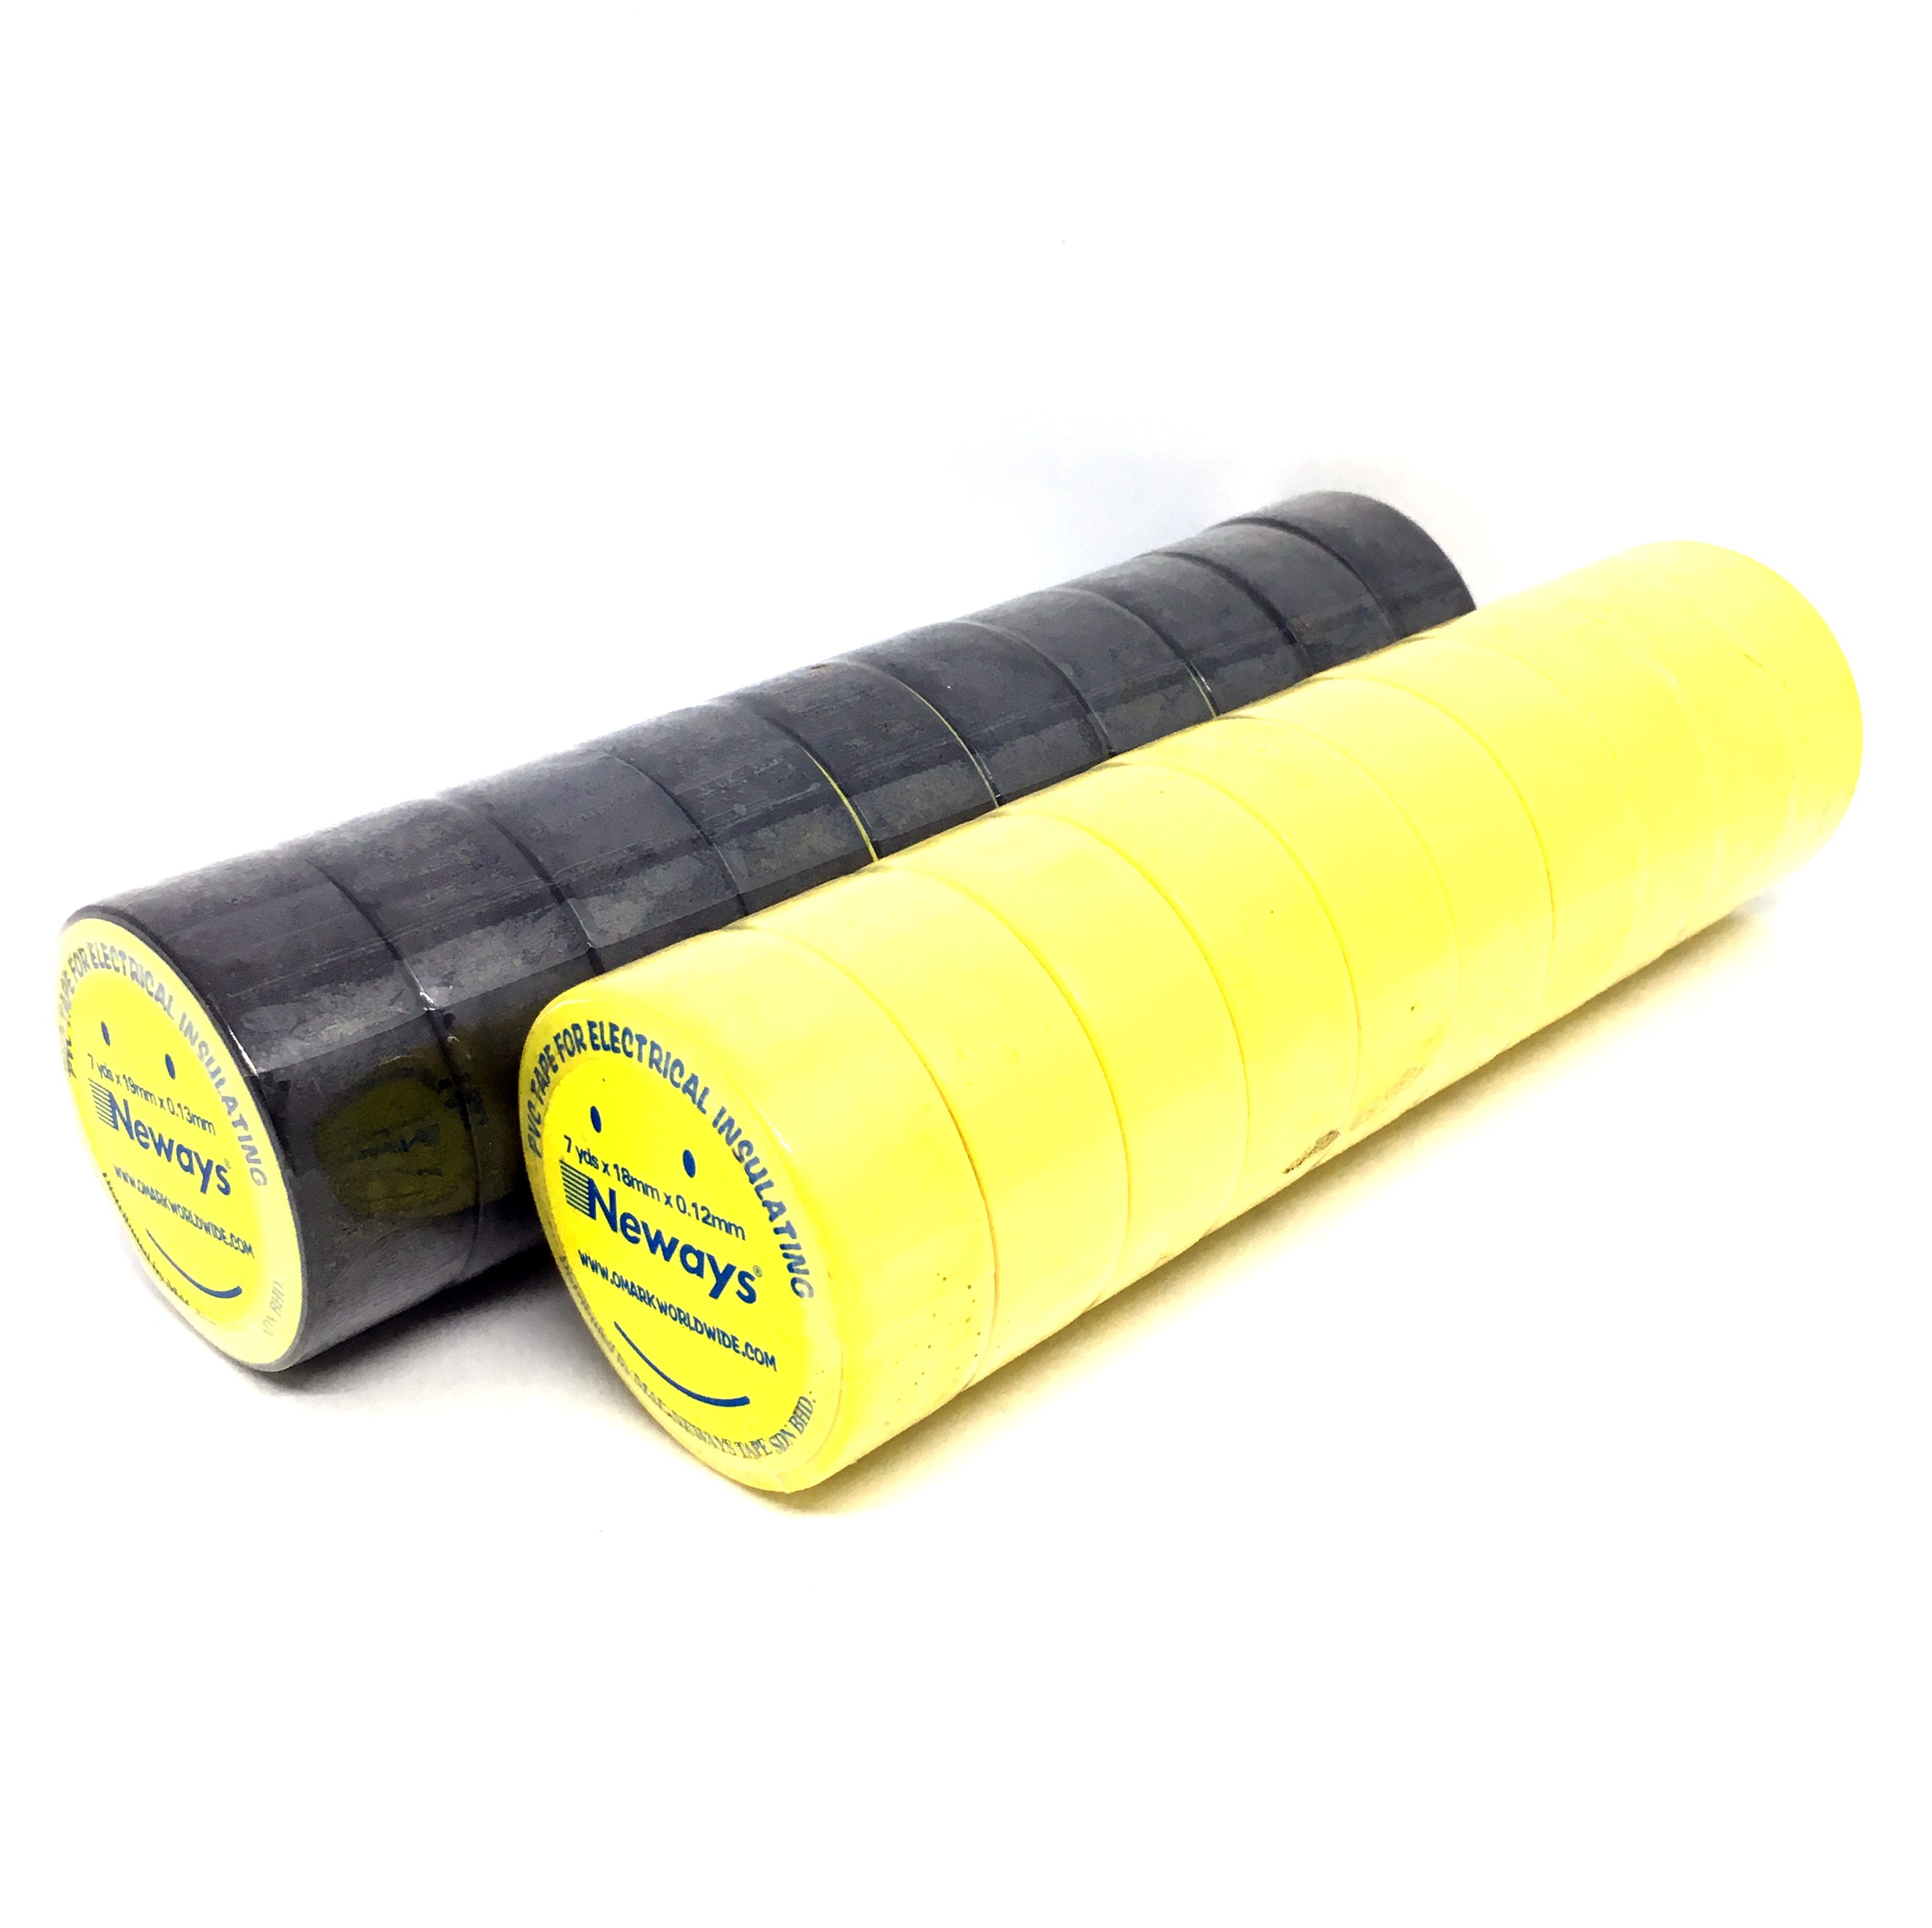 government manufacturers school chalera sector in primary village noida opposite delhi bzdet cello mat tape justdial tapes mats